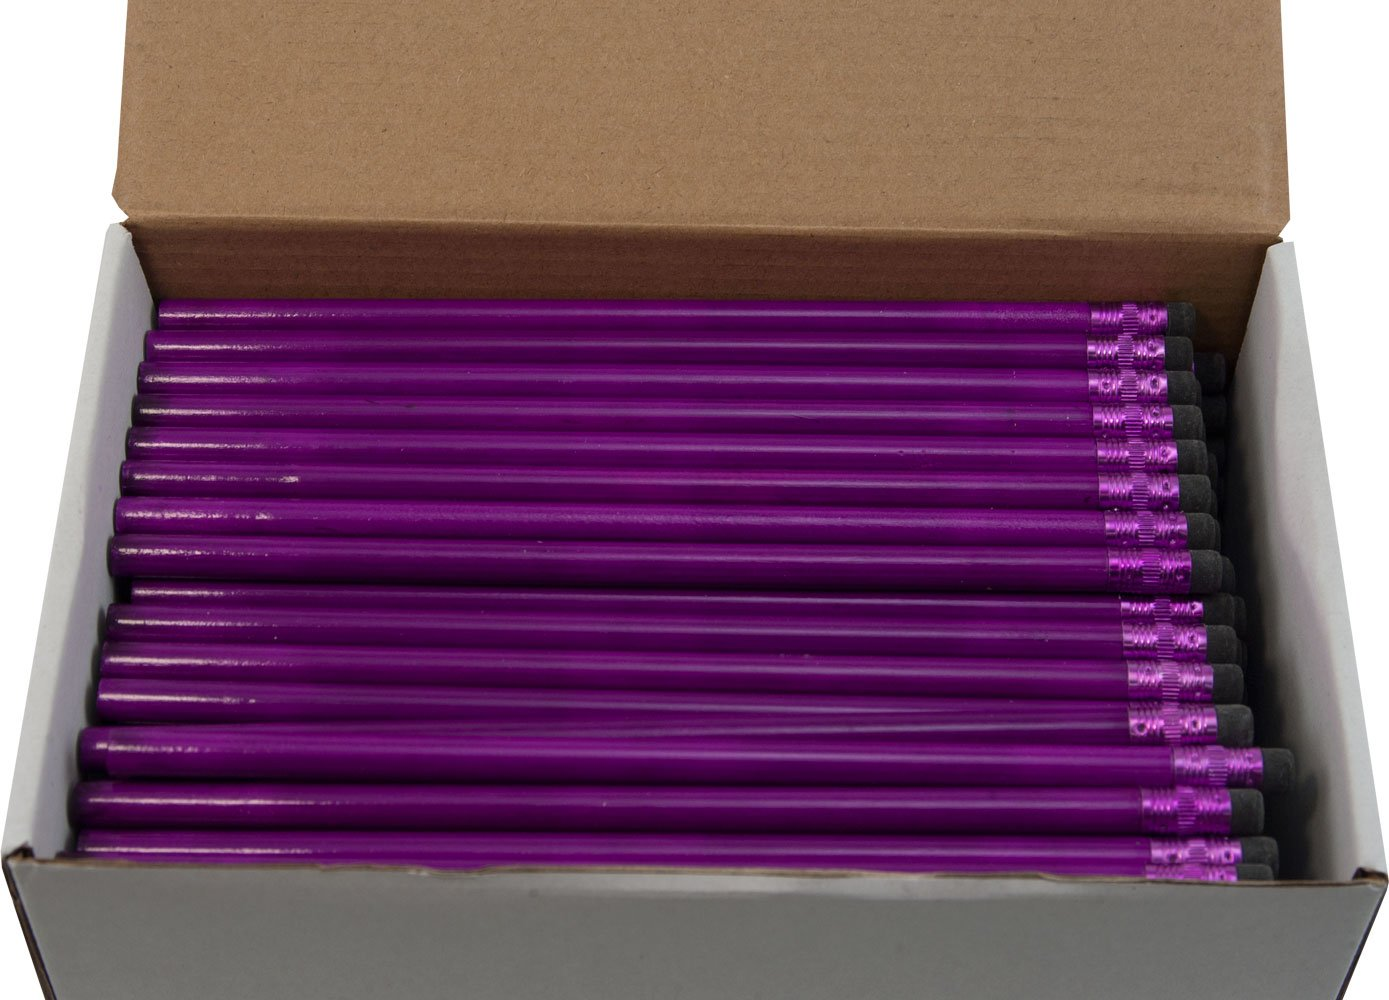 Round Pencils (Full Size Round Pencil with #2 Lead Available in a Variety of Colors) (Tested Non Toxic) (Latex Free Eraser) (Bulk Box of 144) (Classroom Pencils) (Purple Rain)